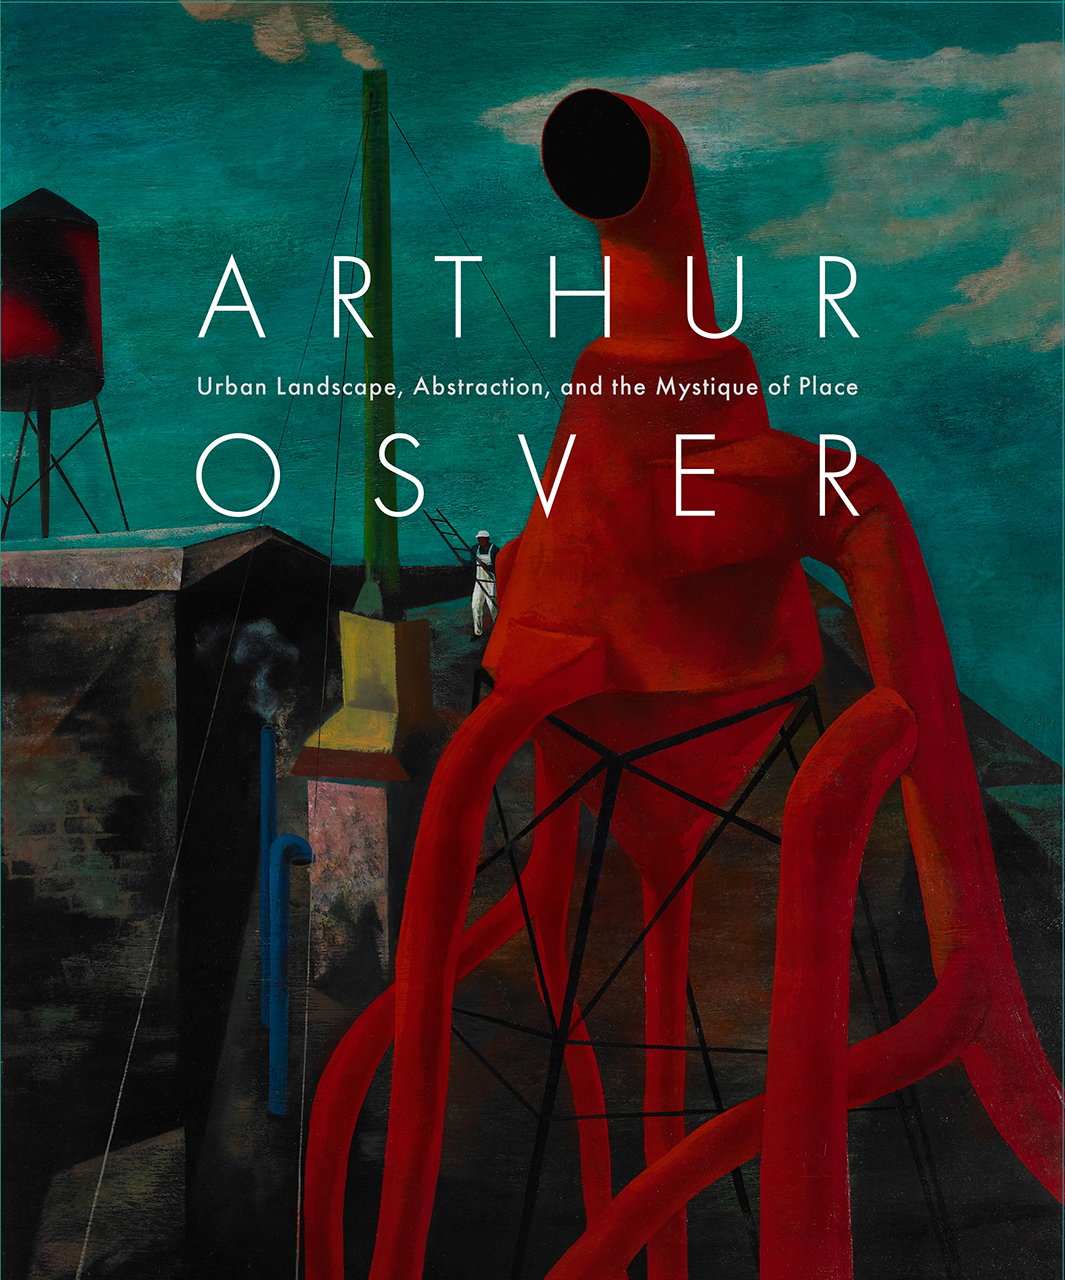 Arthur Osver: Urban Landscape, Abstraction, and the Mystique of Place